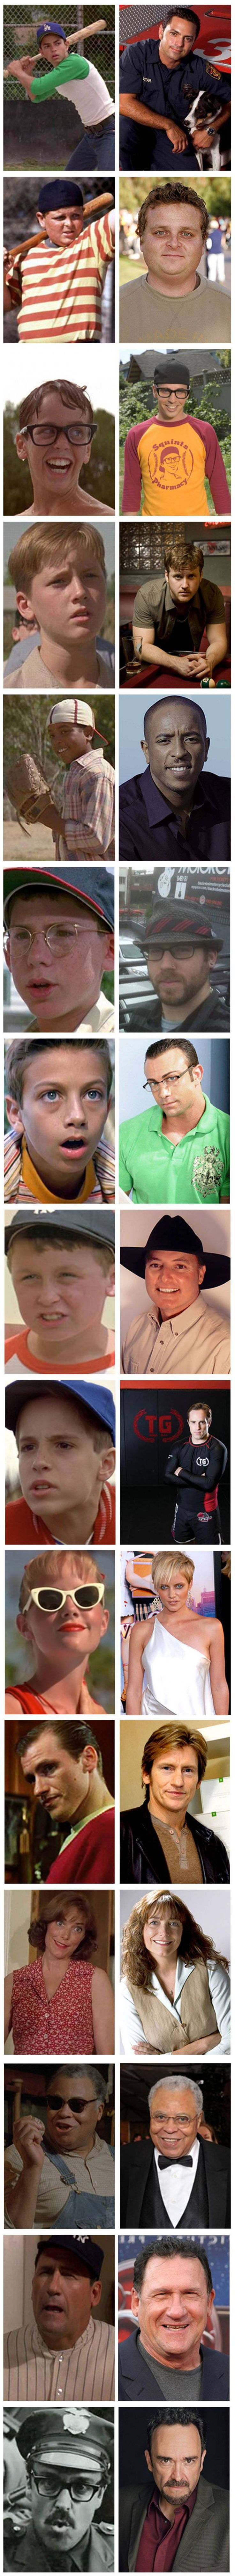 The Sandlot Actors Then (1993) and Now (2013)